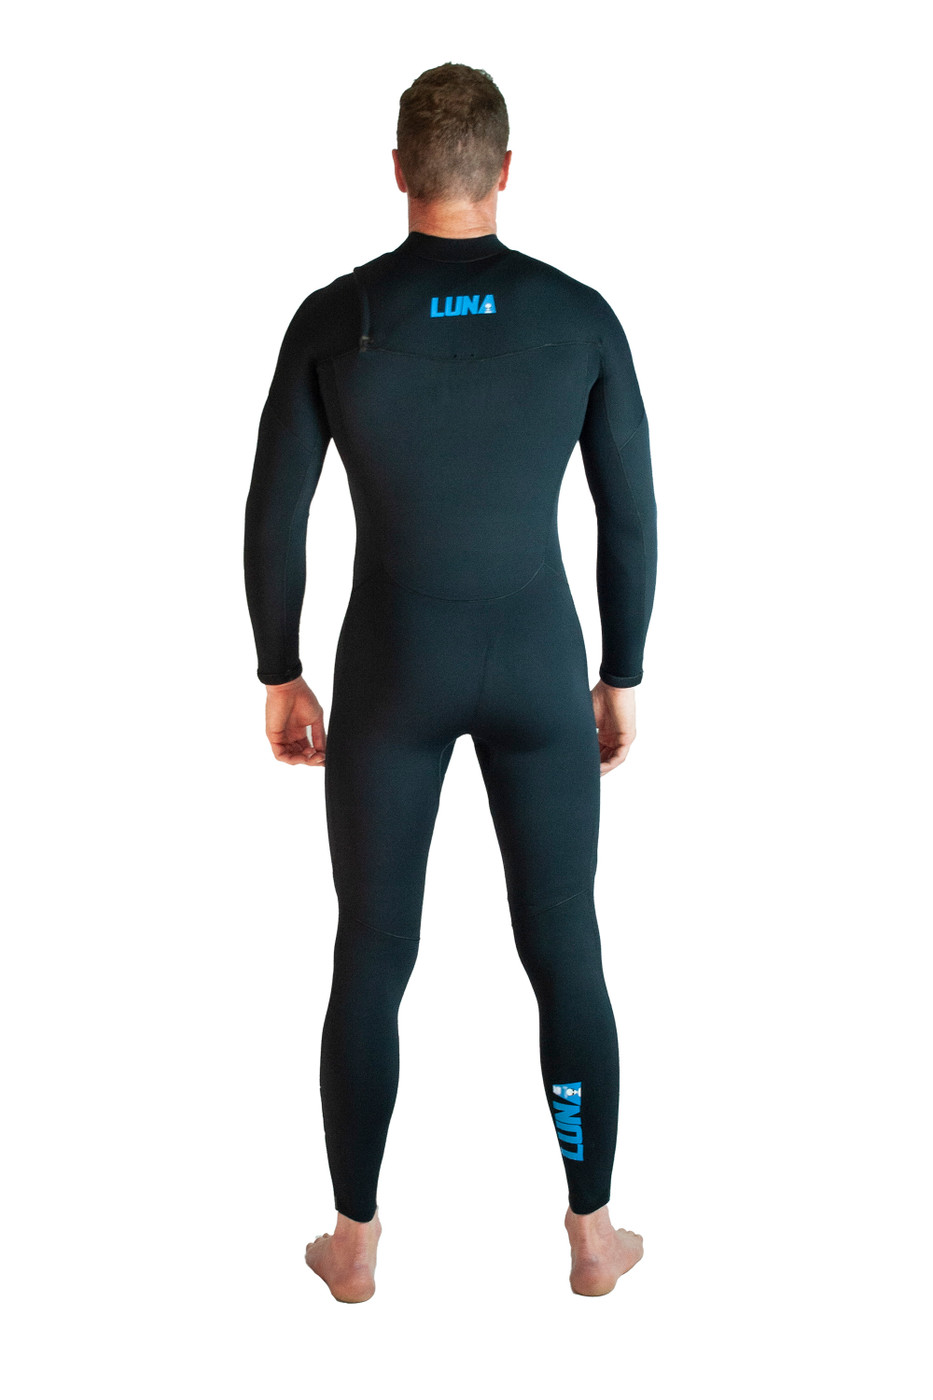 High performance wetsuit